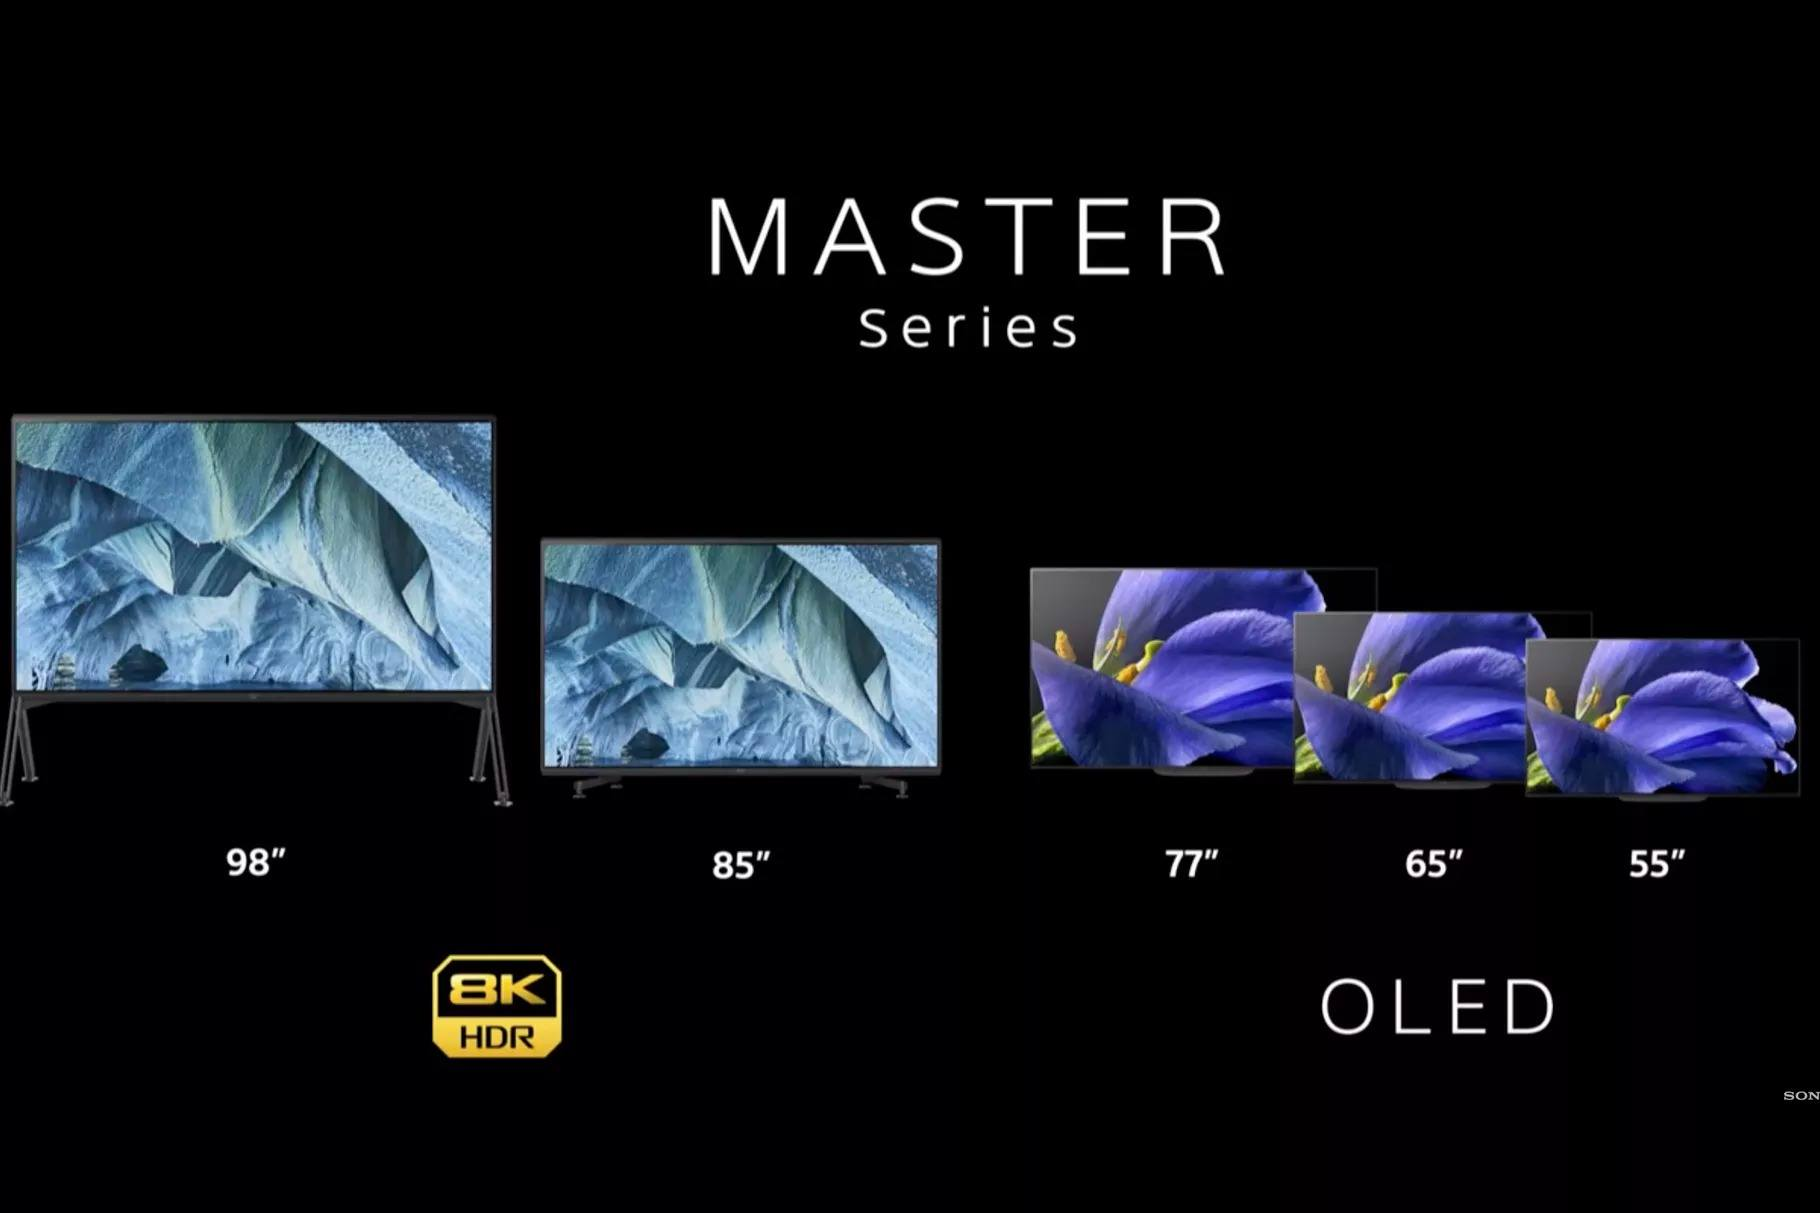 TV Sony master series